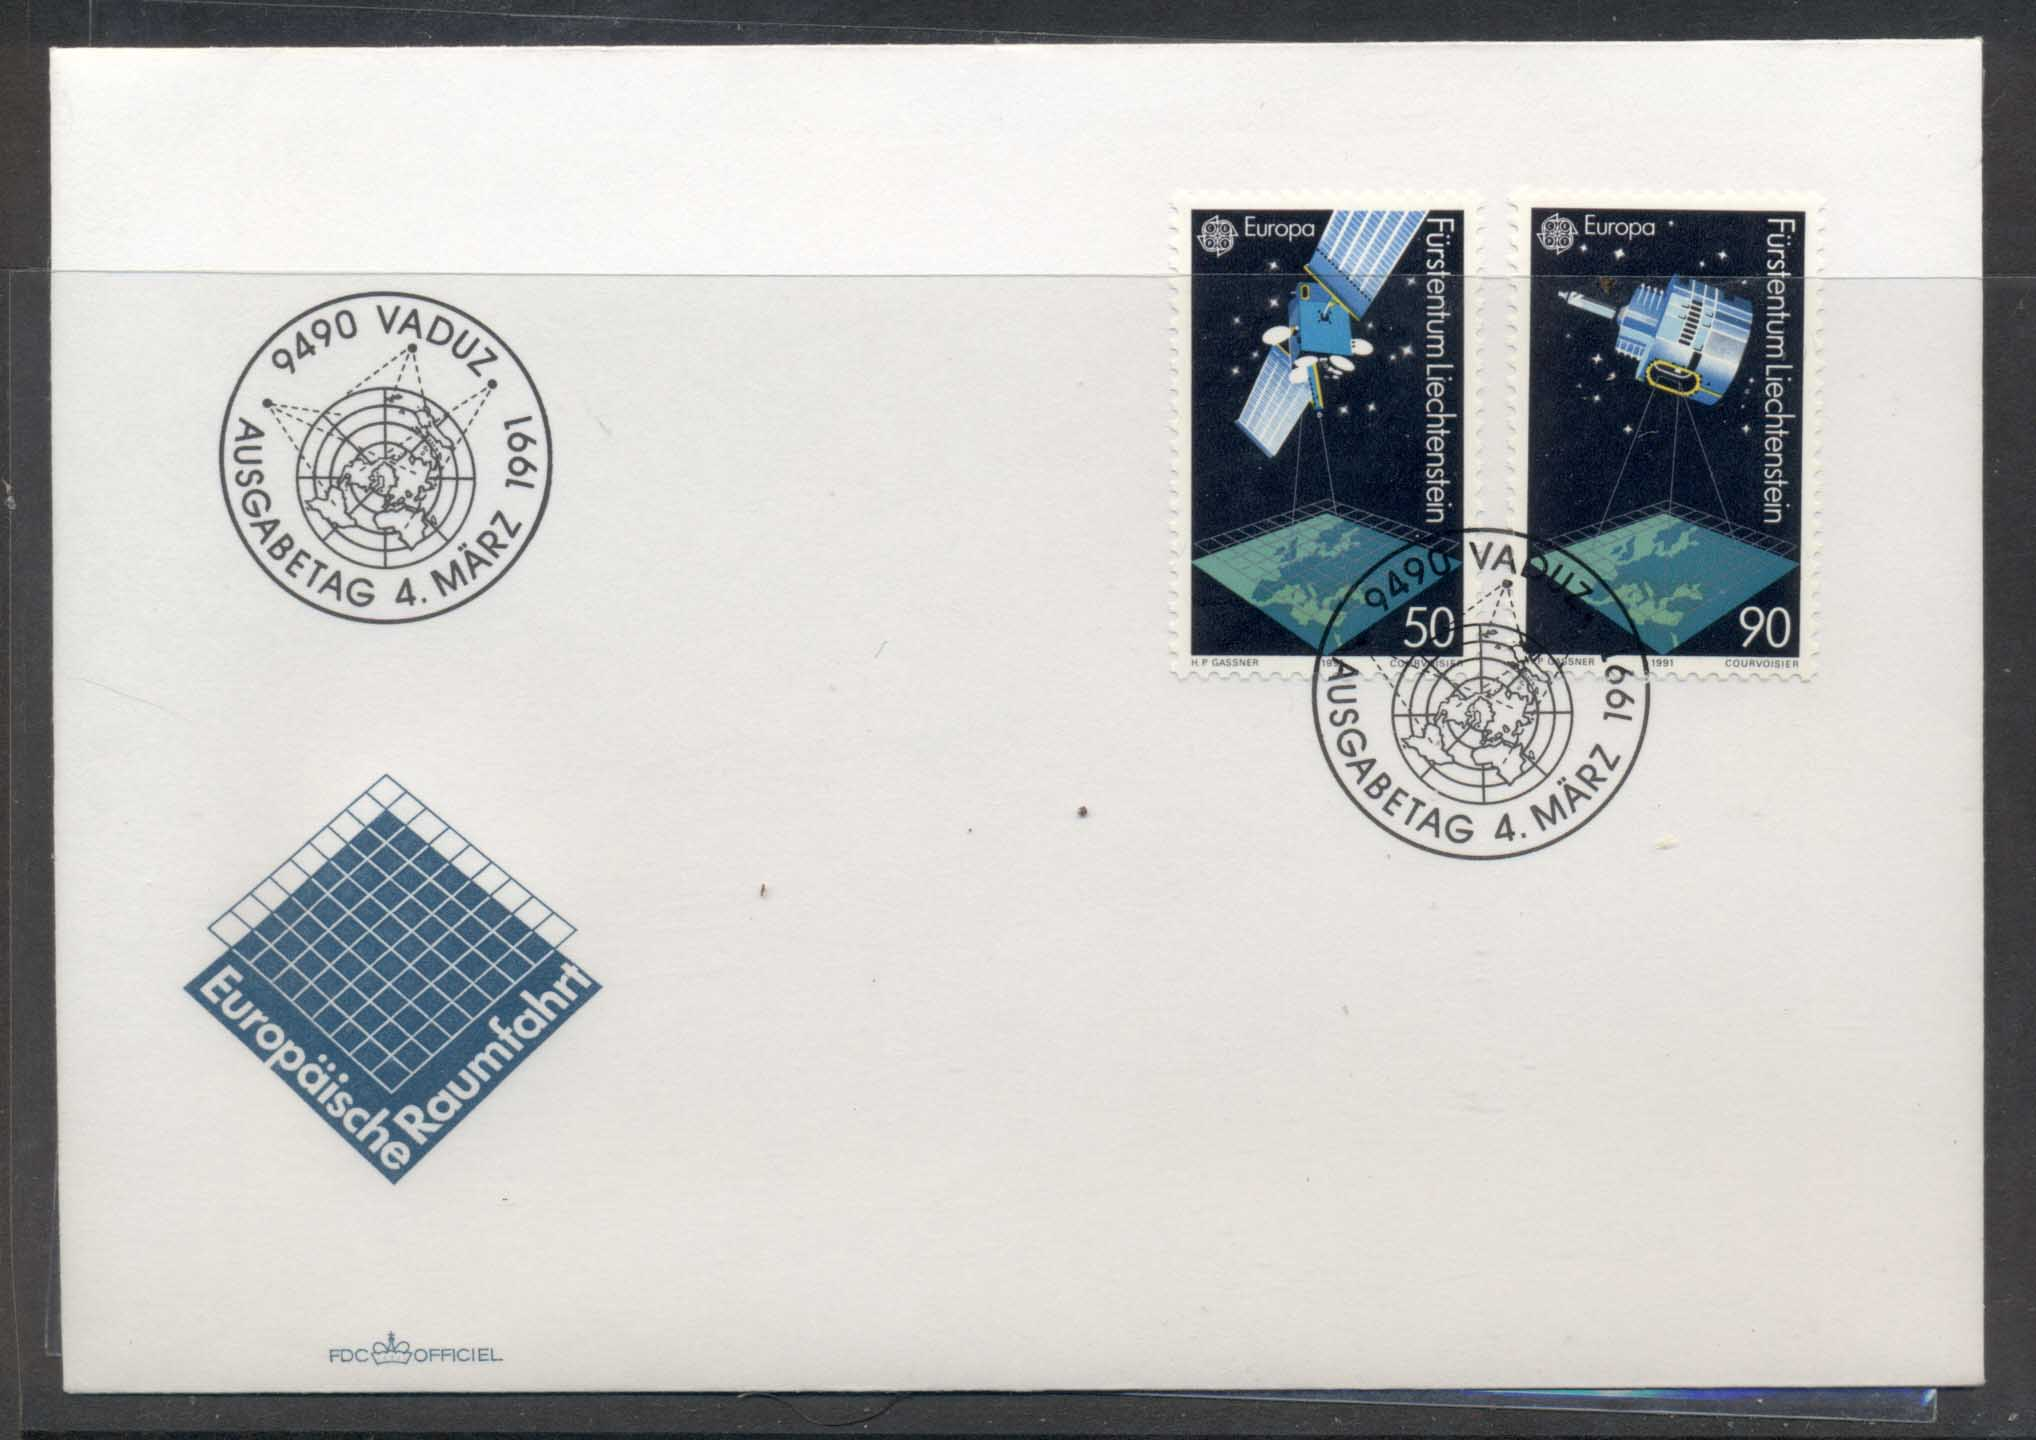 Liechtenstein 1991 Europa Man in Space FDC